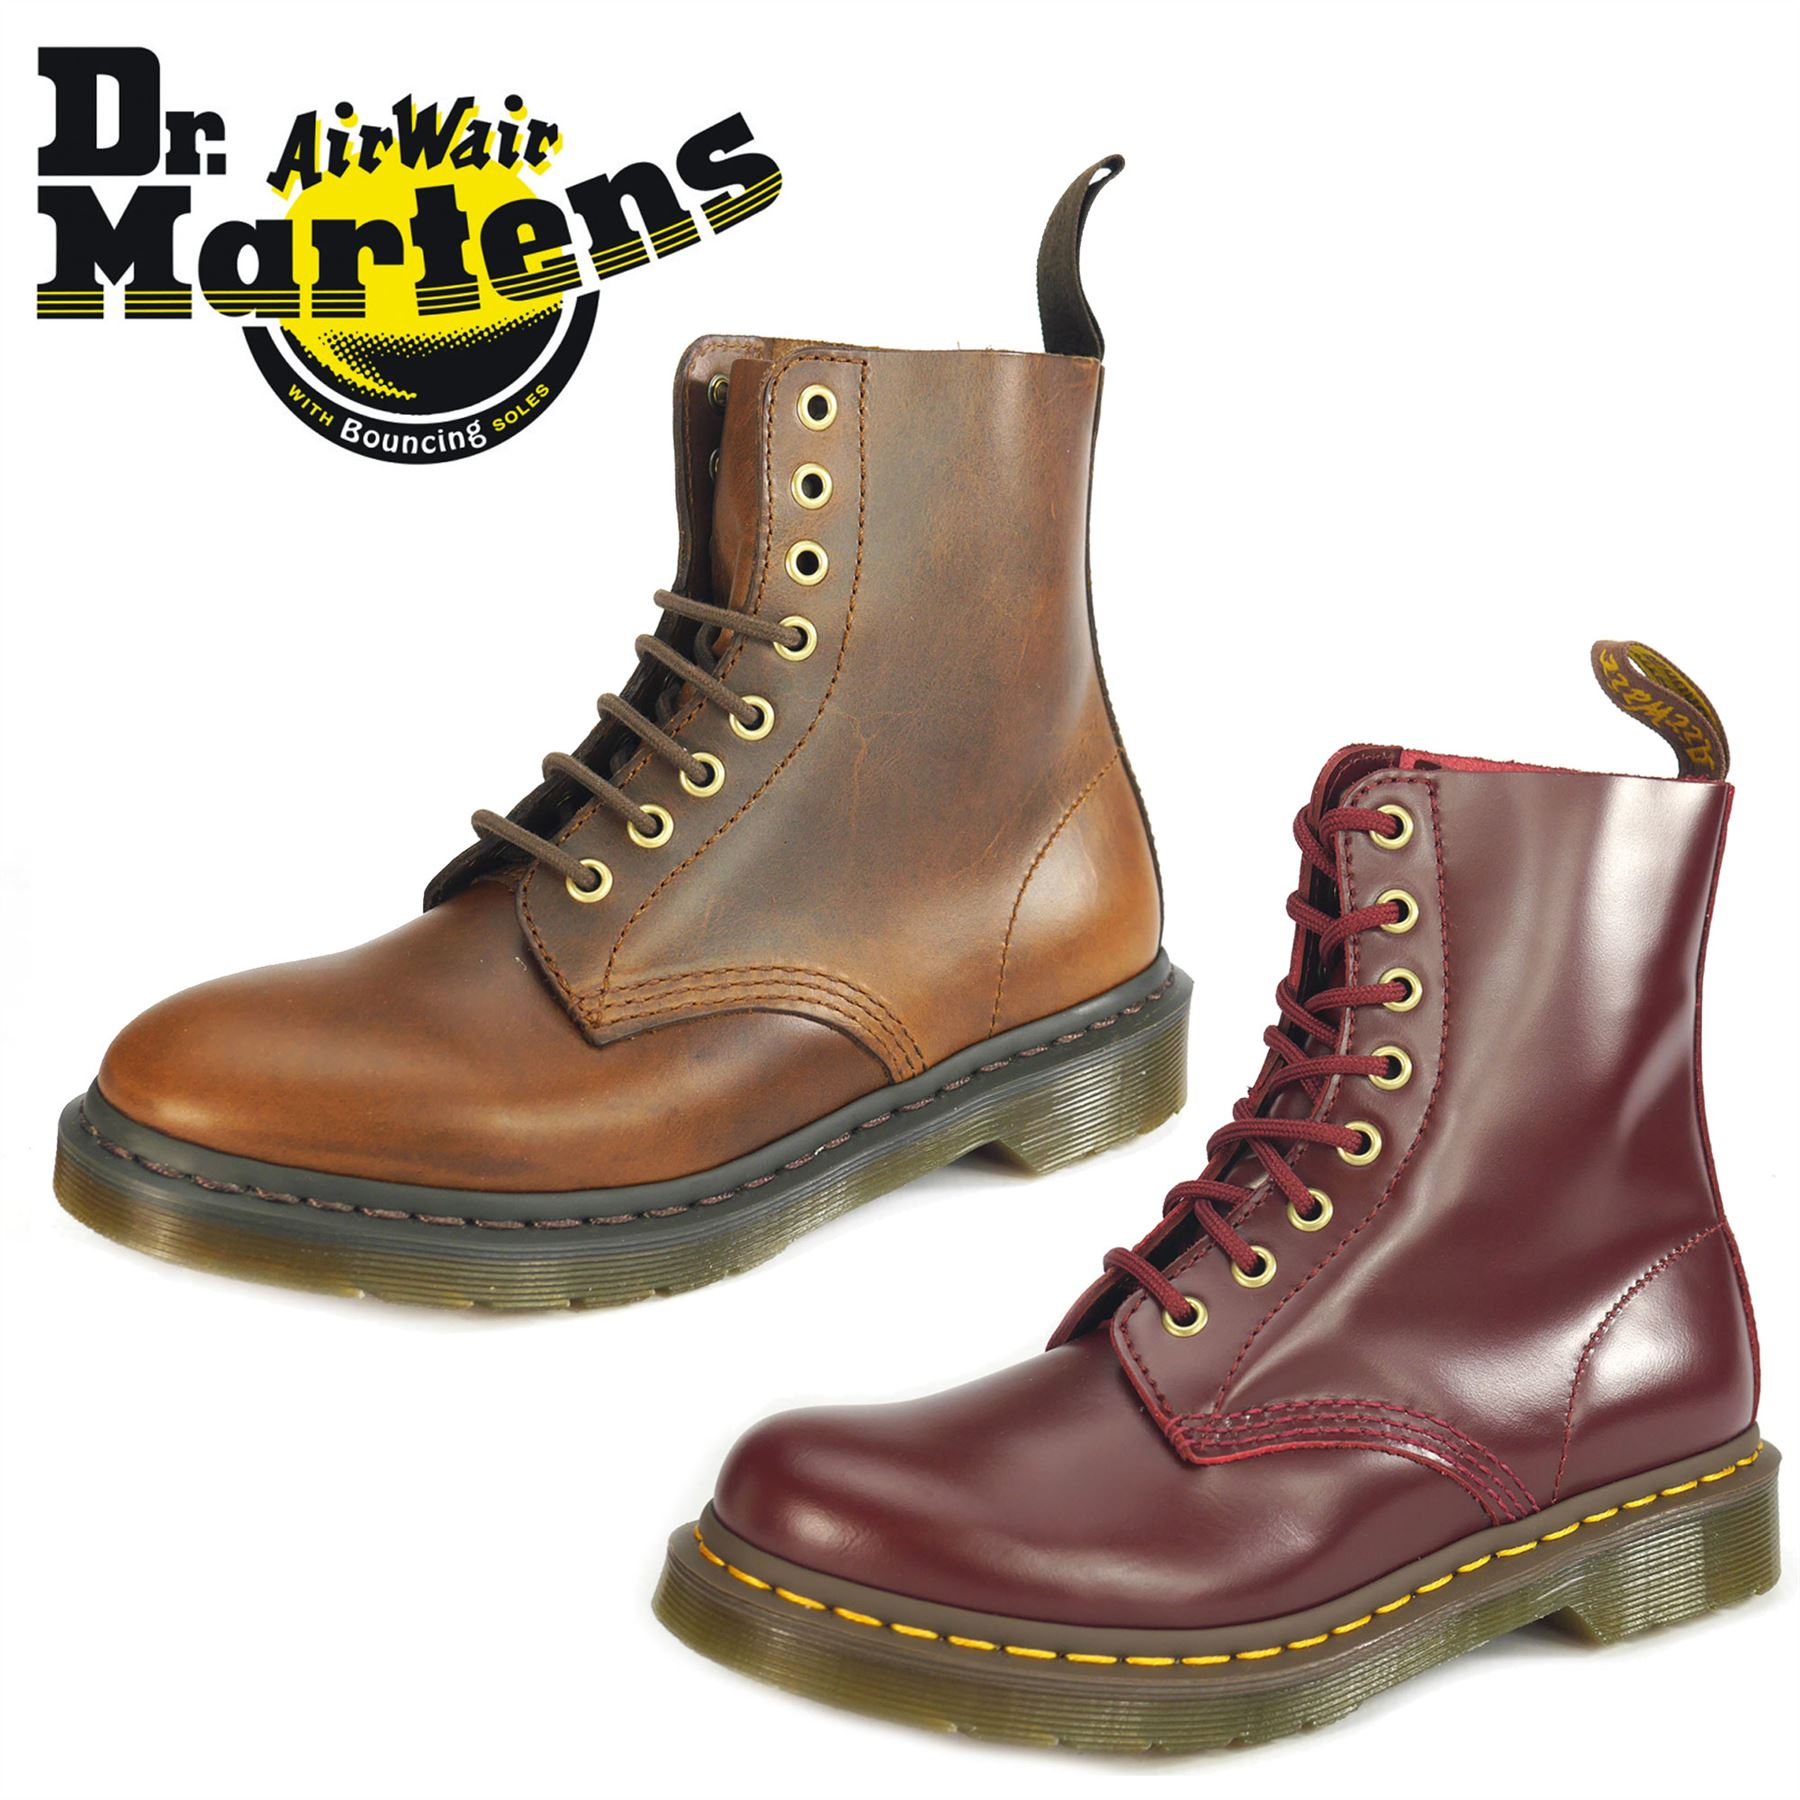 dr martens pascal 8 eye 1460 brown oxblood lace up ladies boots ebay. Black Bedroom Furniture Sets. Home Design Ideas